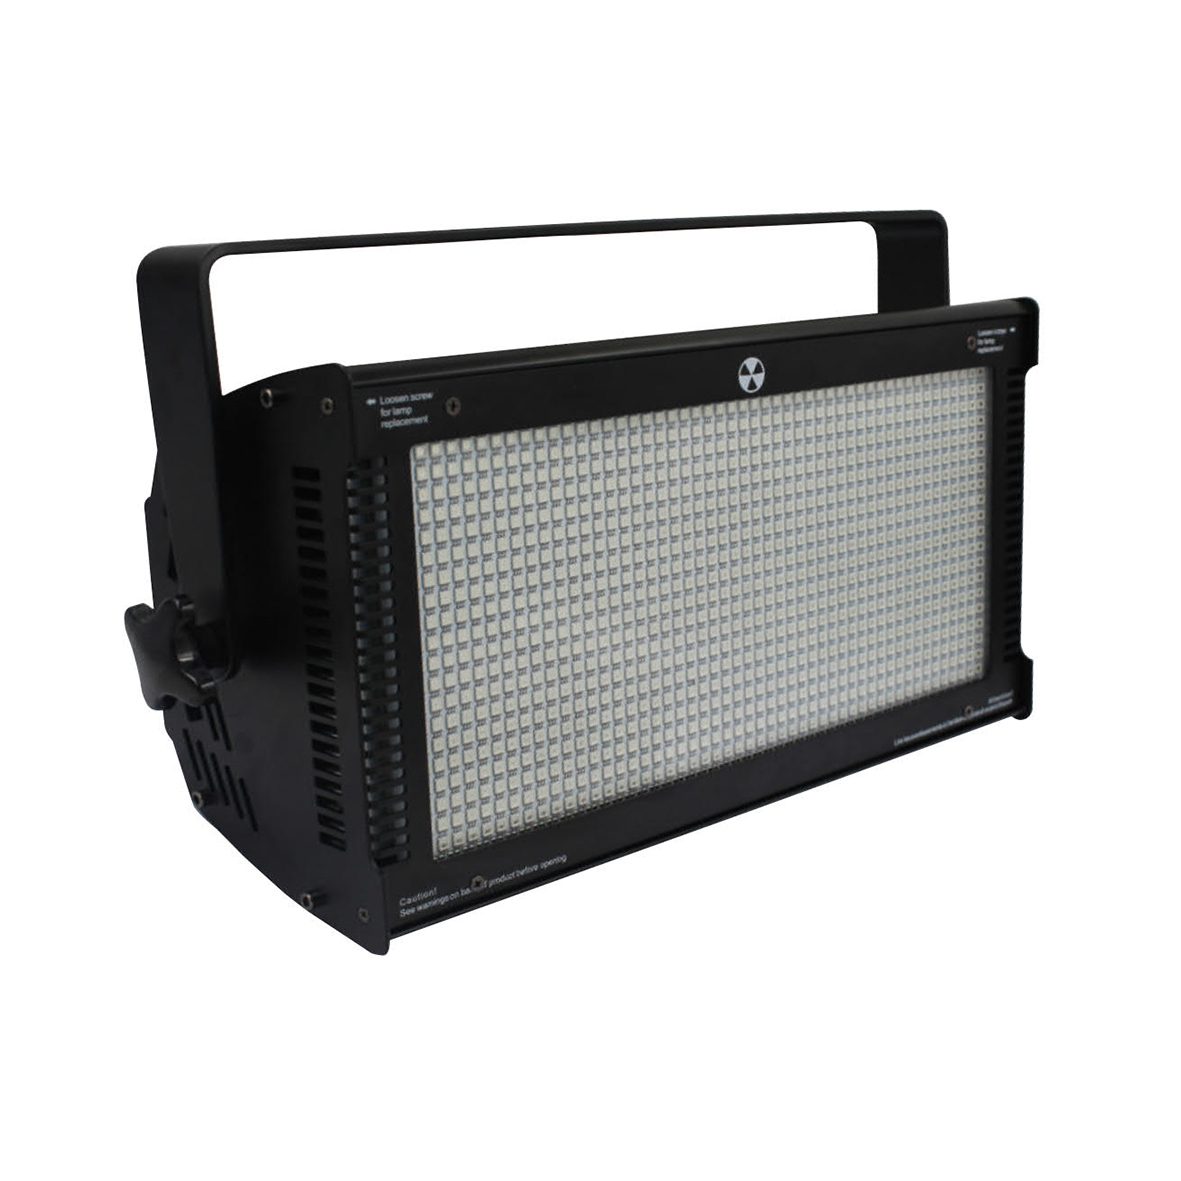 LED 1000/550 full color strobe